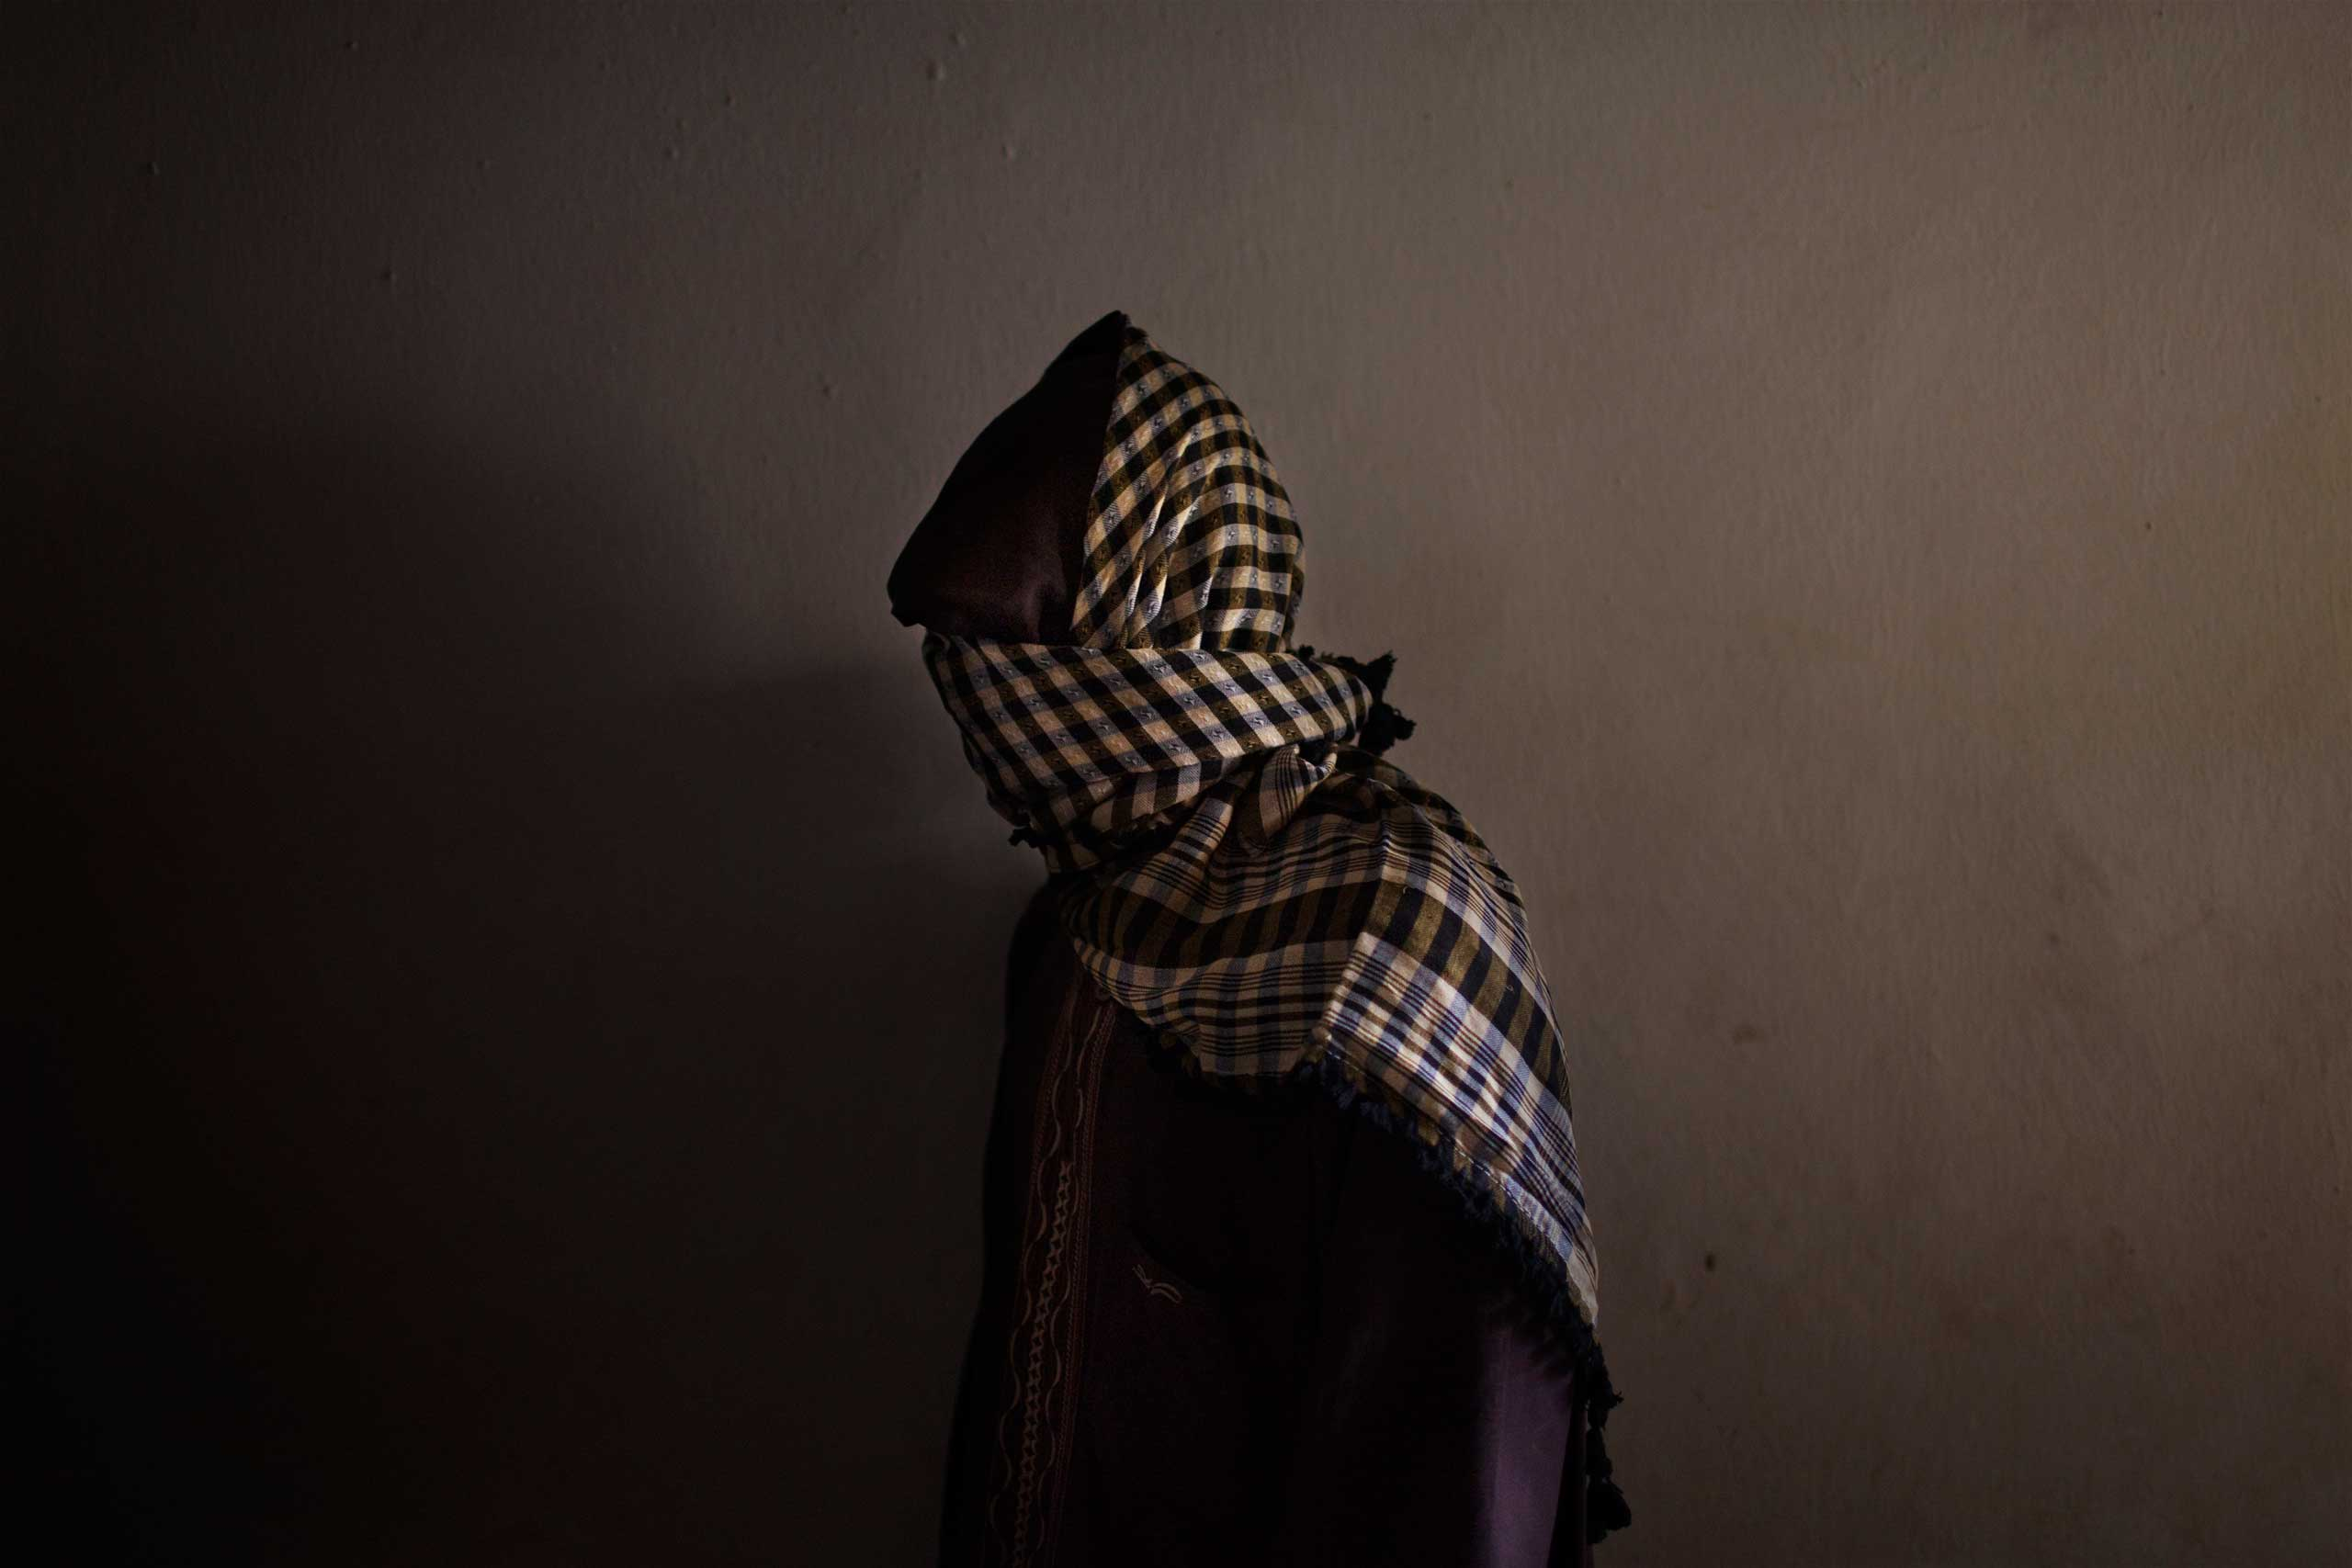 A member of Boko Haram seen in a suburb of Kano, Nigeria, in 2012